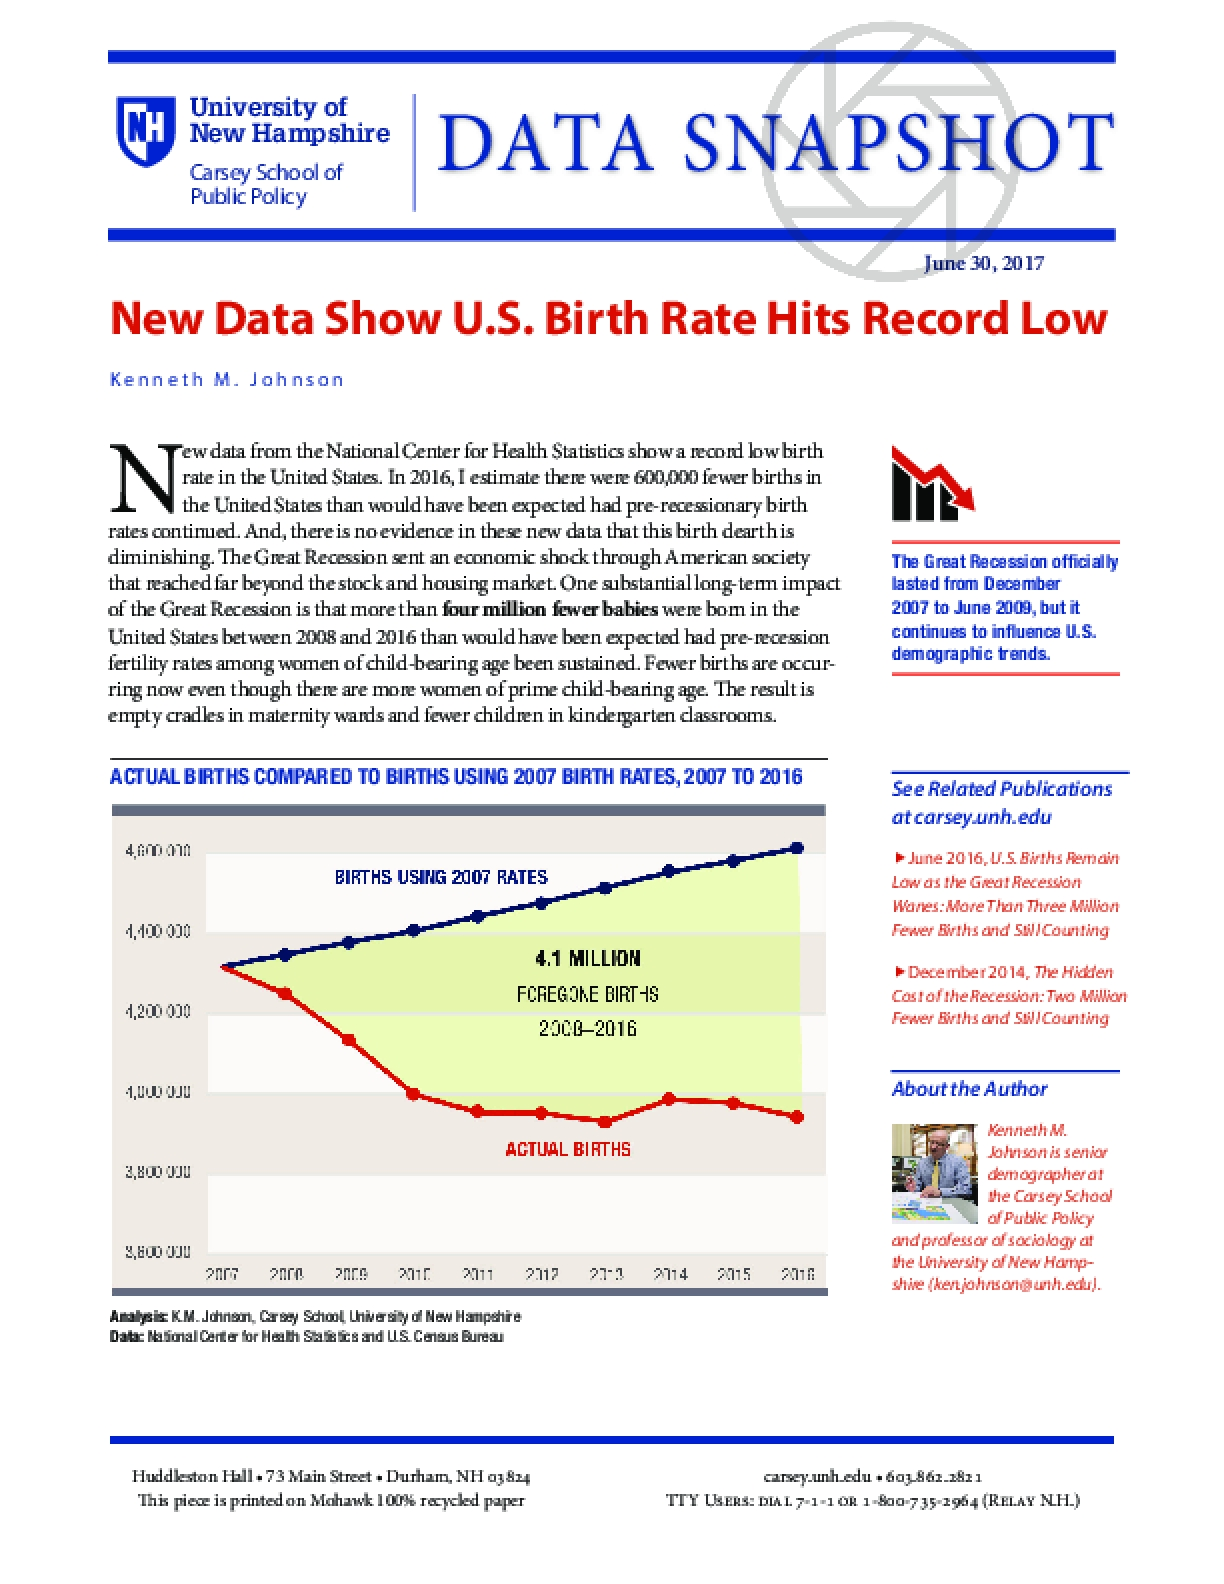 Data Snapshot: New Data Show U.S. Birth Rate Hits Record Low